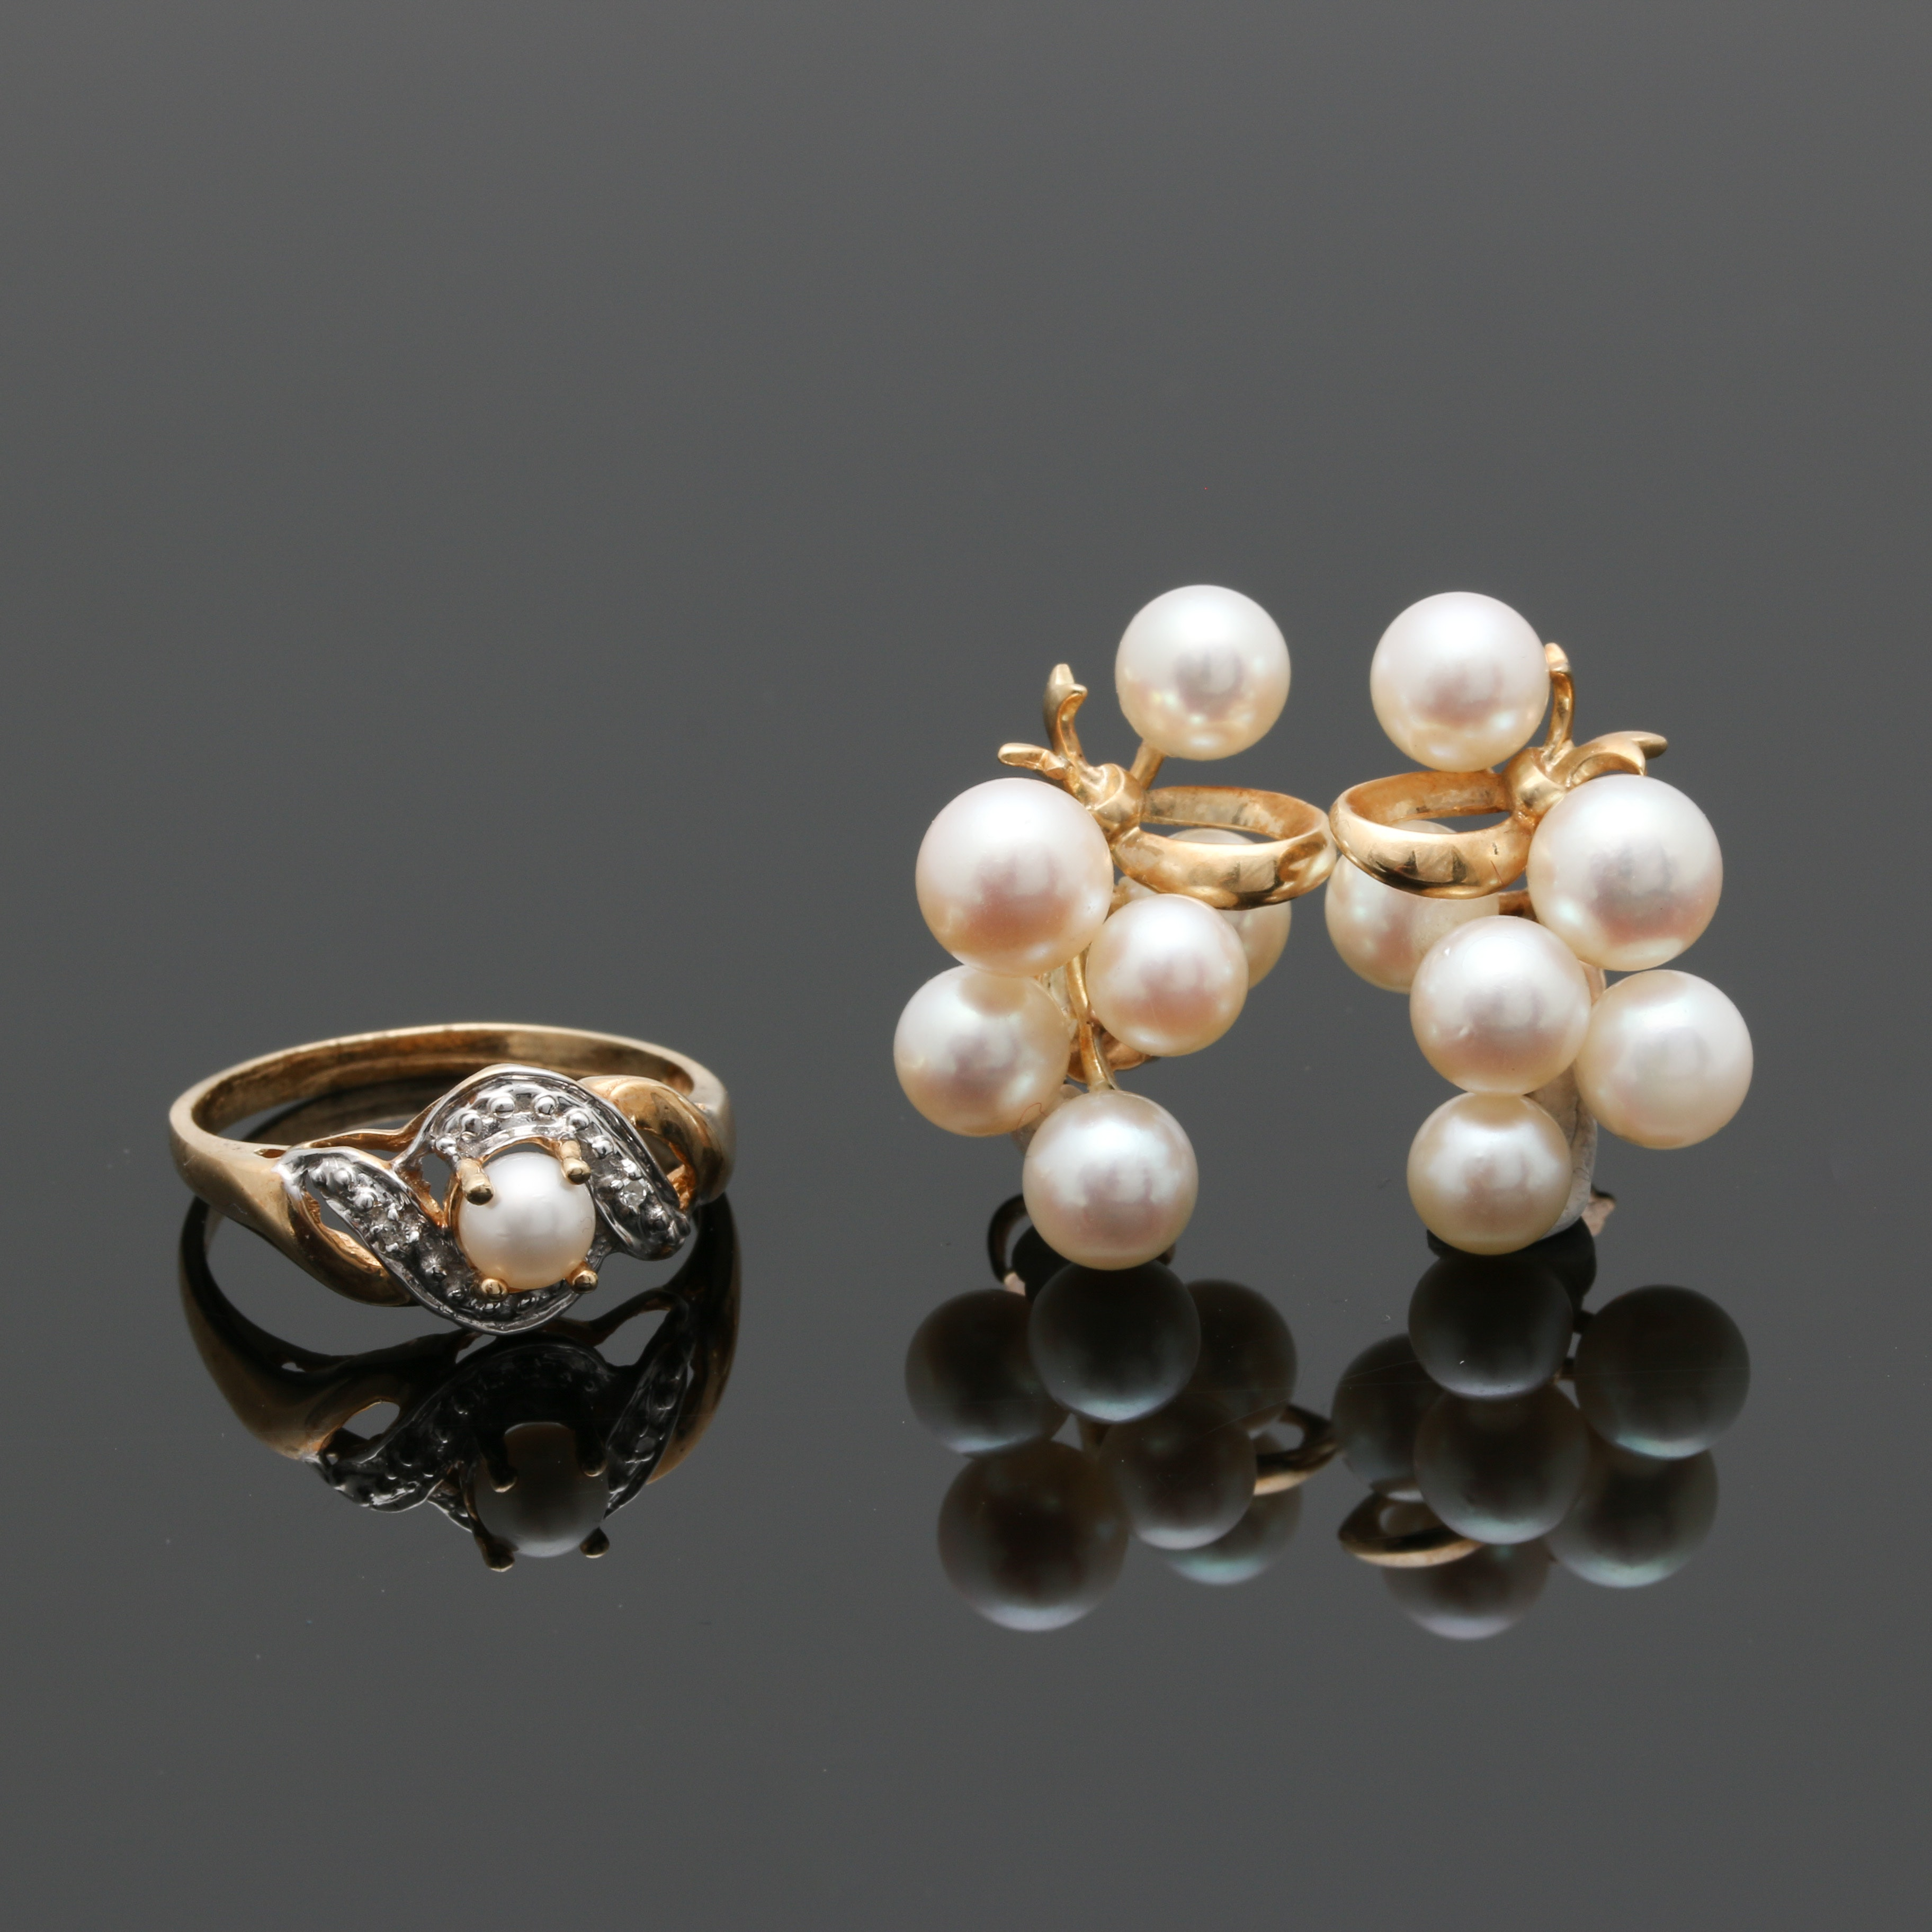 14K Yellow Gold Pearl and Diamond Ring and Earrings